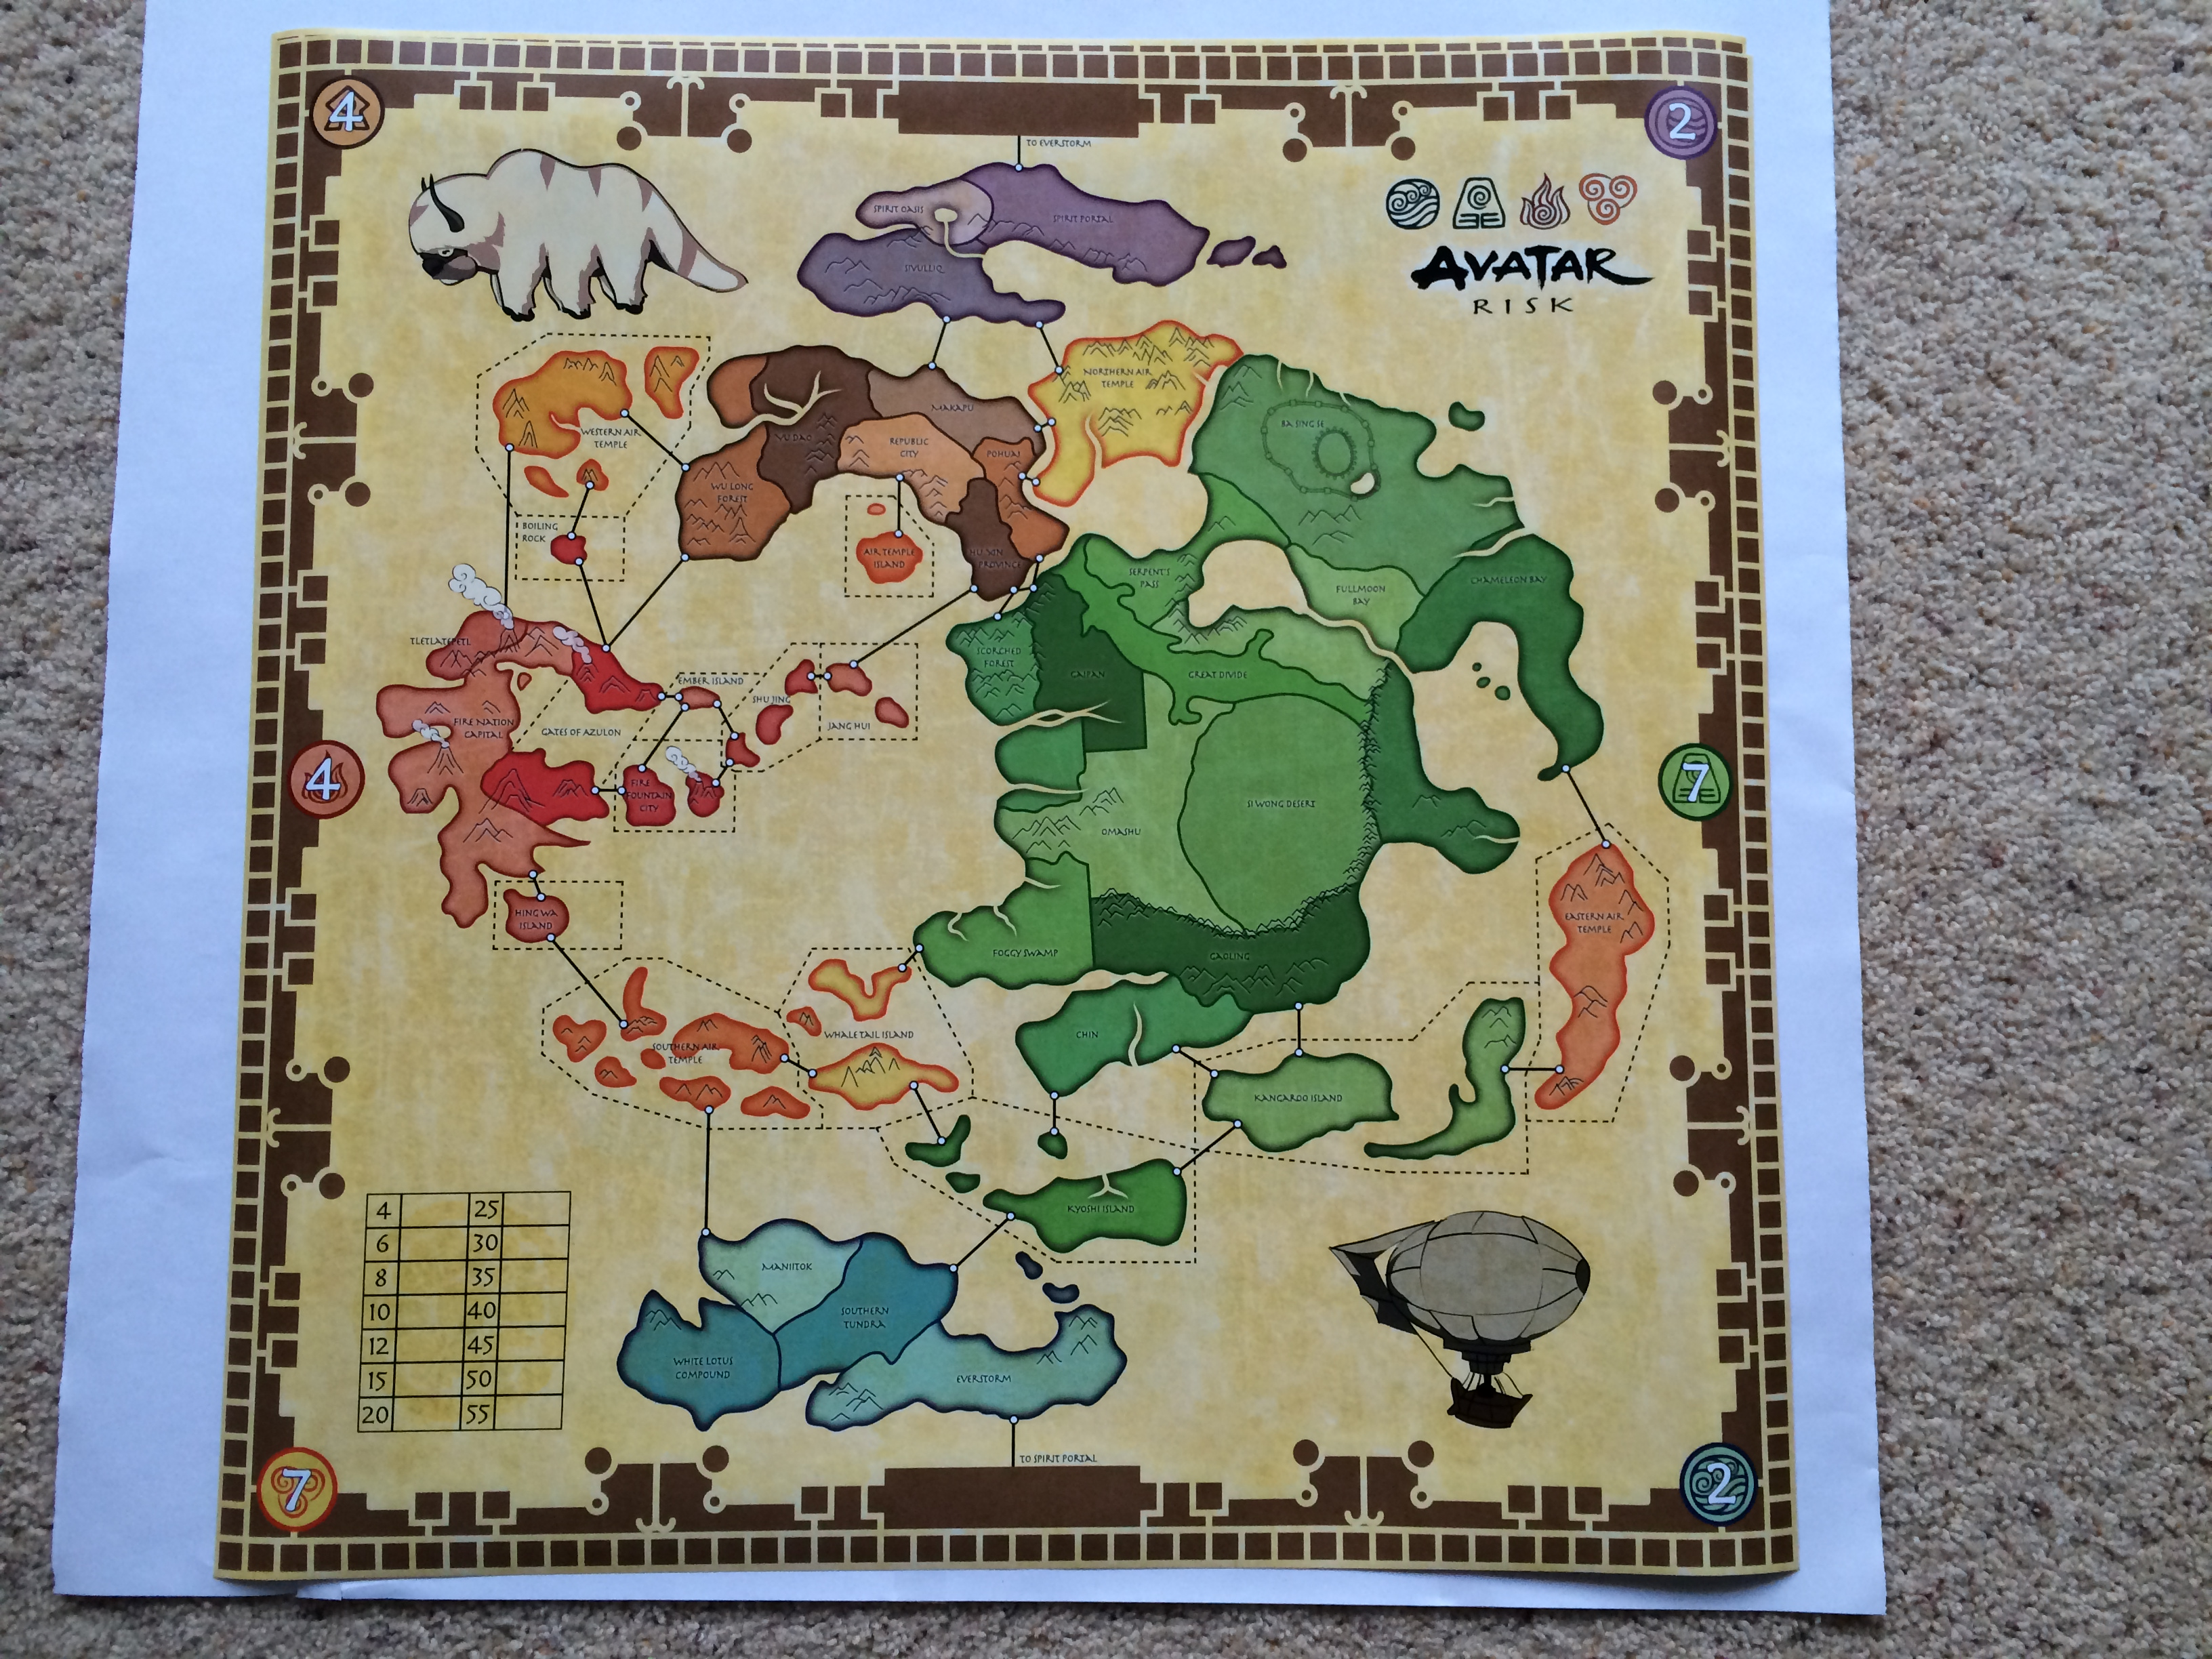 Avatar The Last Airbender Risk Gameboard Tested - Avatar the last airbender us map